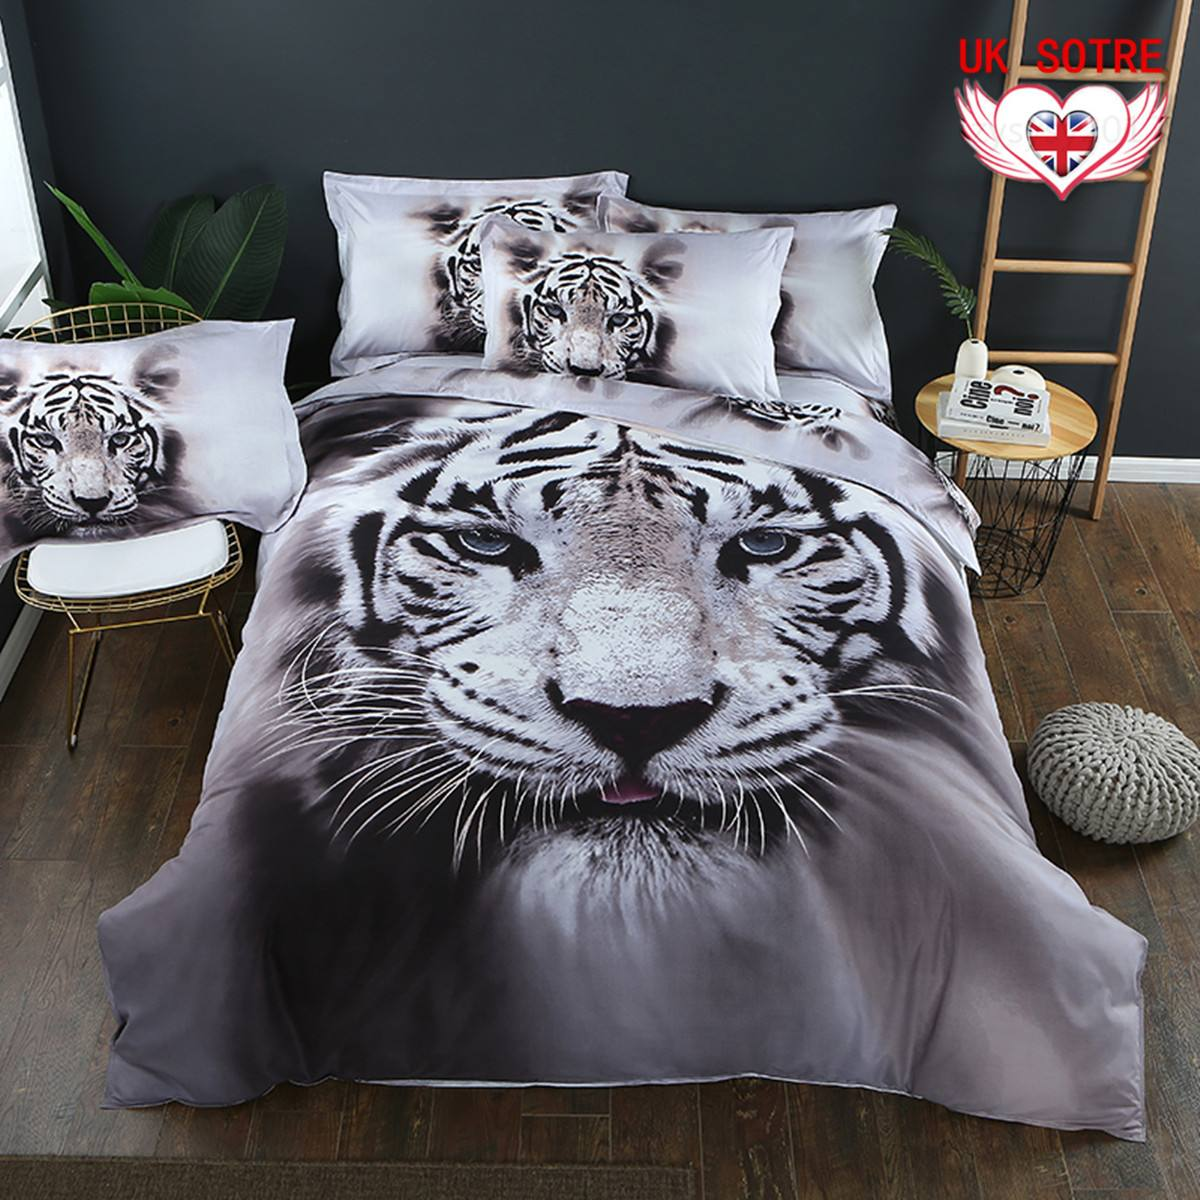 Tiger Duvet Quilt Cover Set Queen Size Animal Bed Pillow Cases 3D Animal Bed Cover Bedding Sets Quvet Cover <font><b>Pillowcases</b></font> Cover image